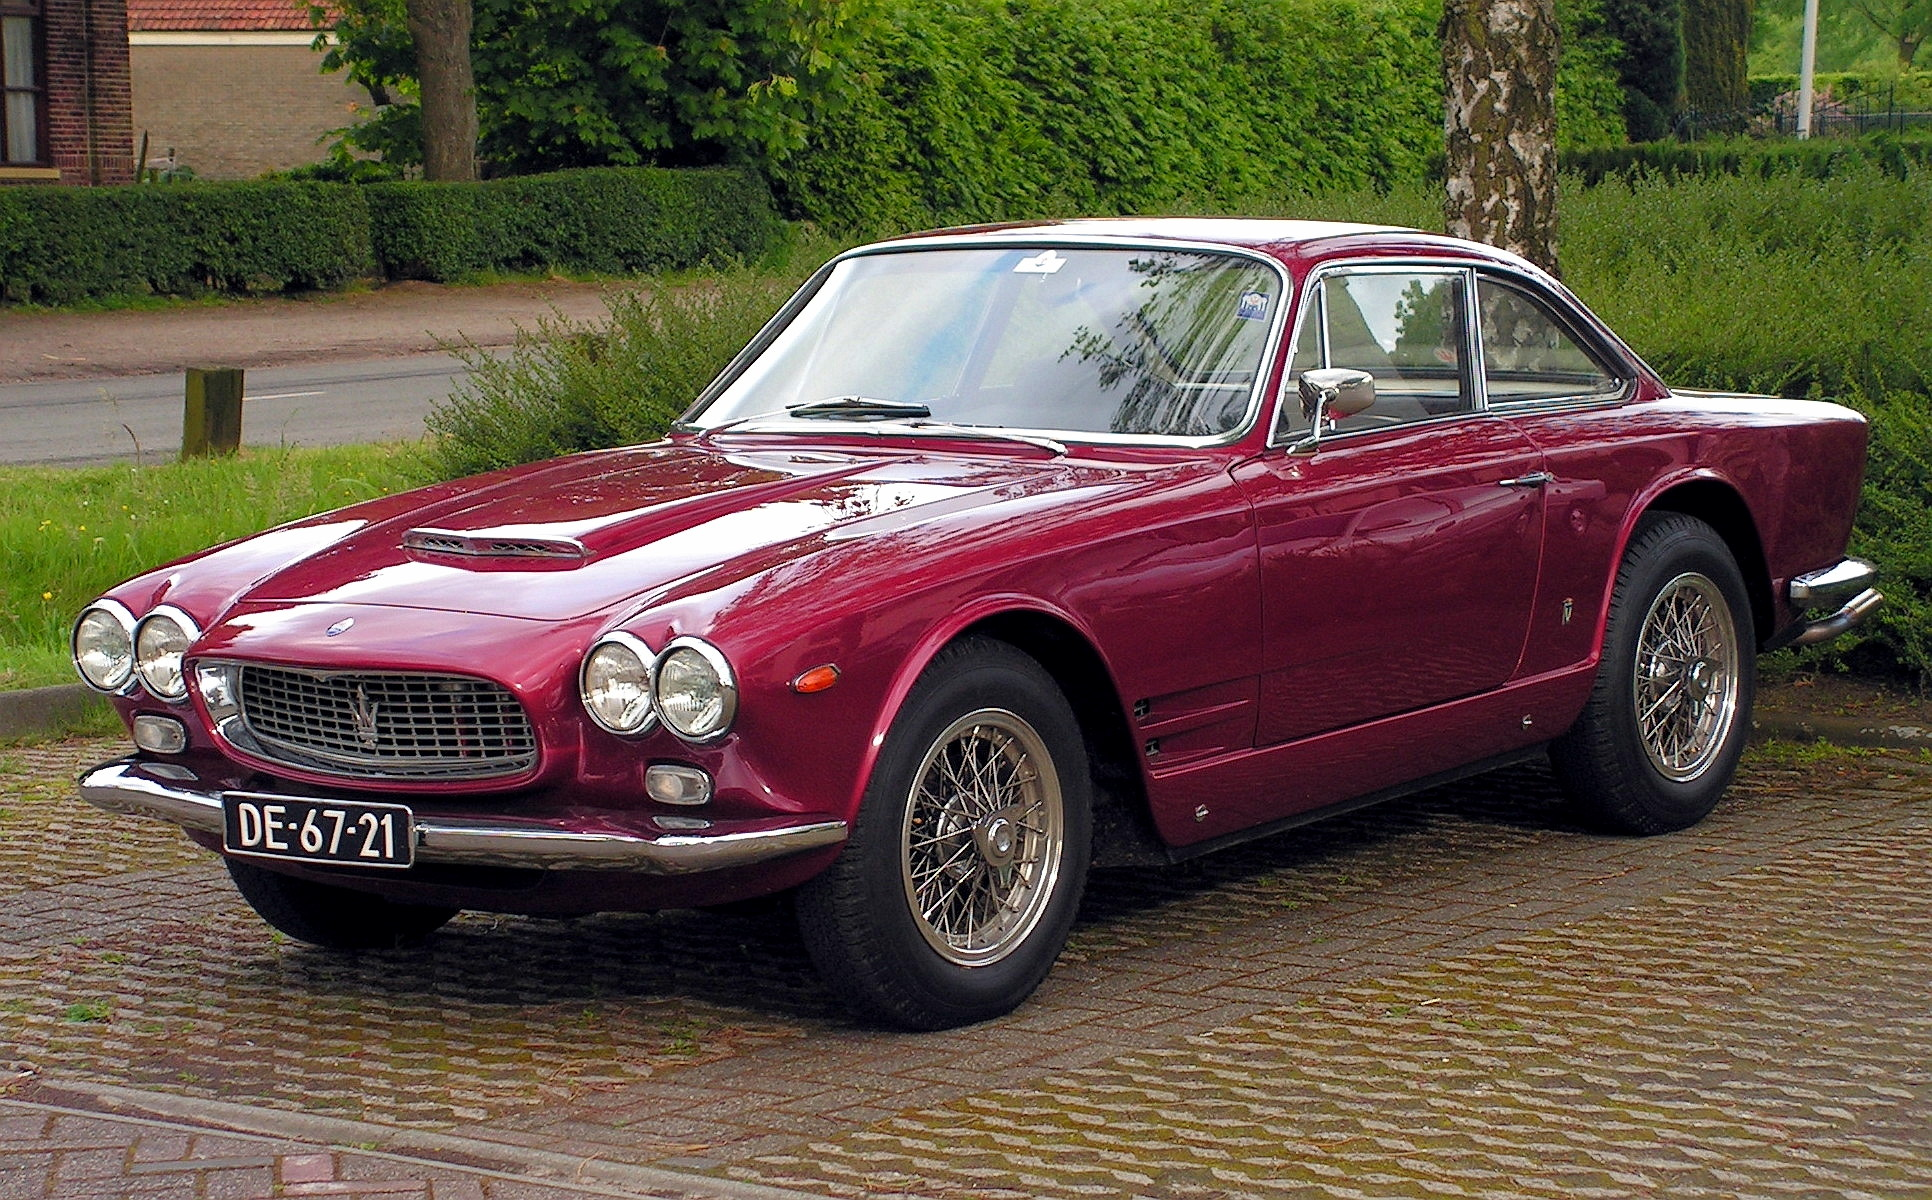 Maserati 3500 gti High Resolution Wallpaper Free